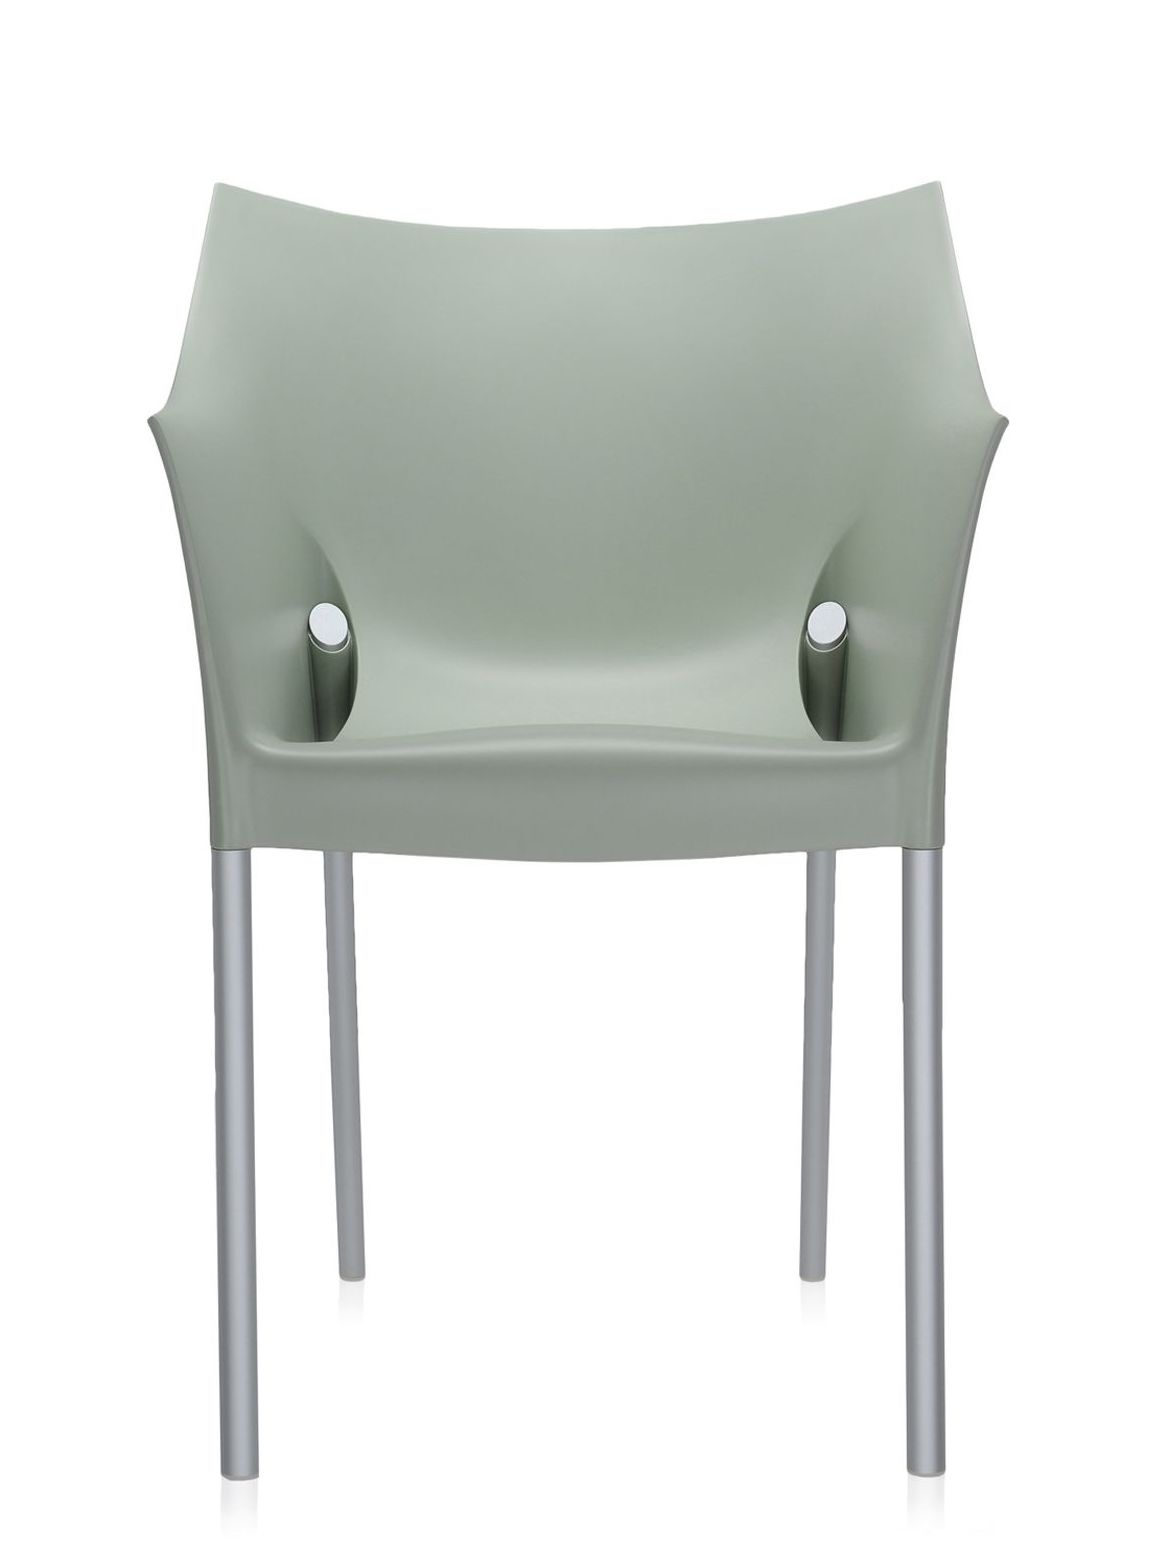 Kartell Chair Dr. NO by Philippe Starck